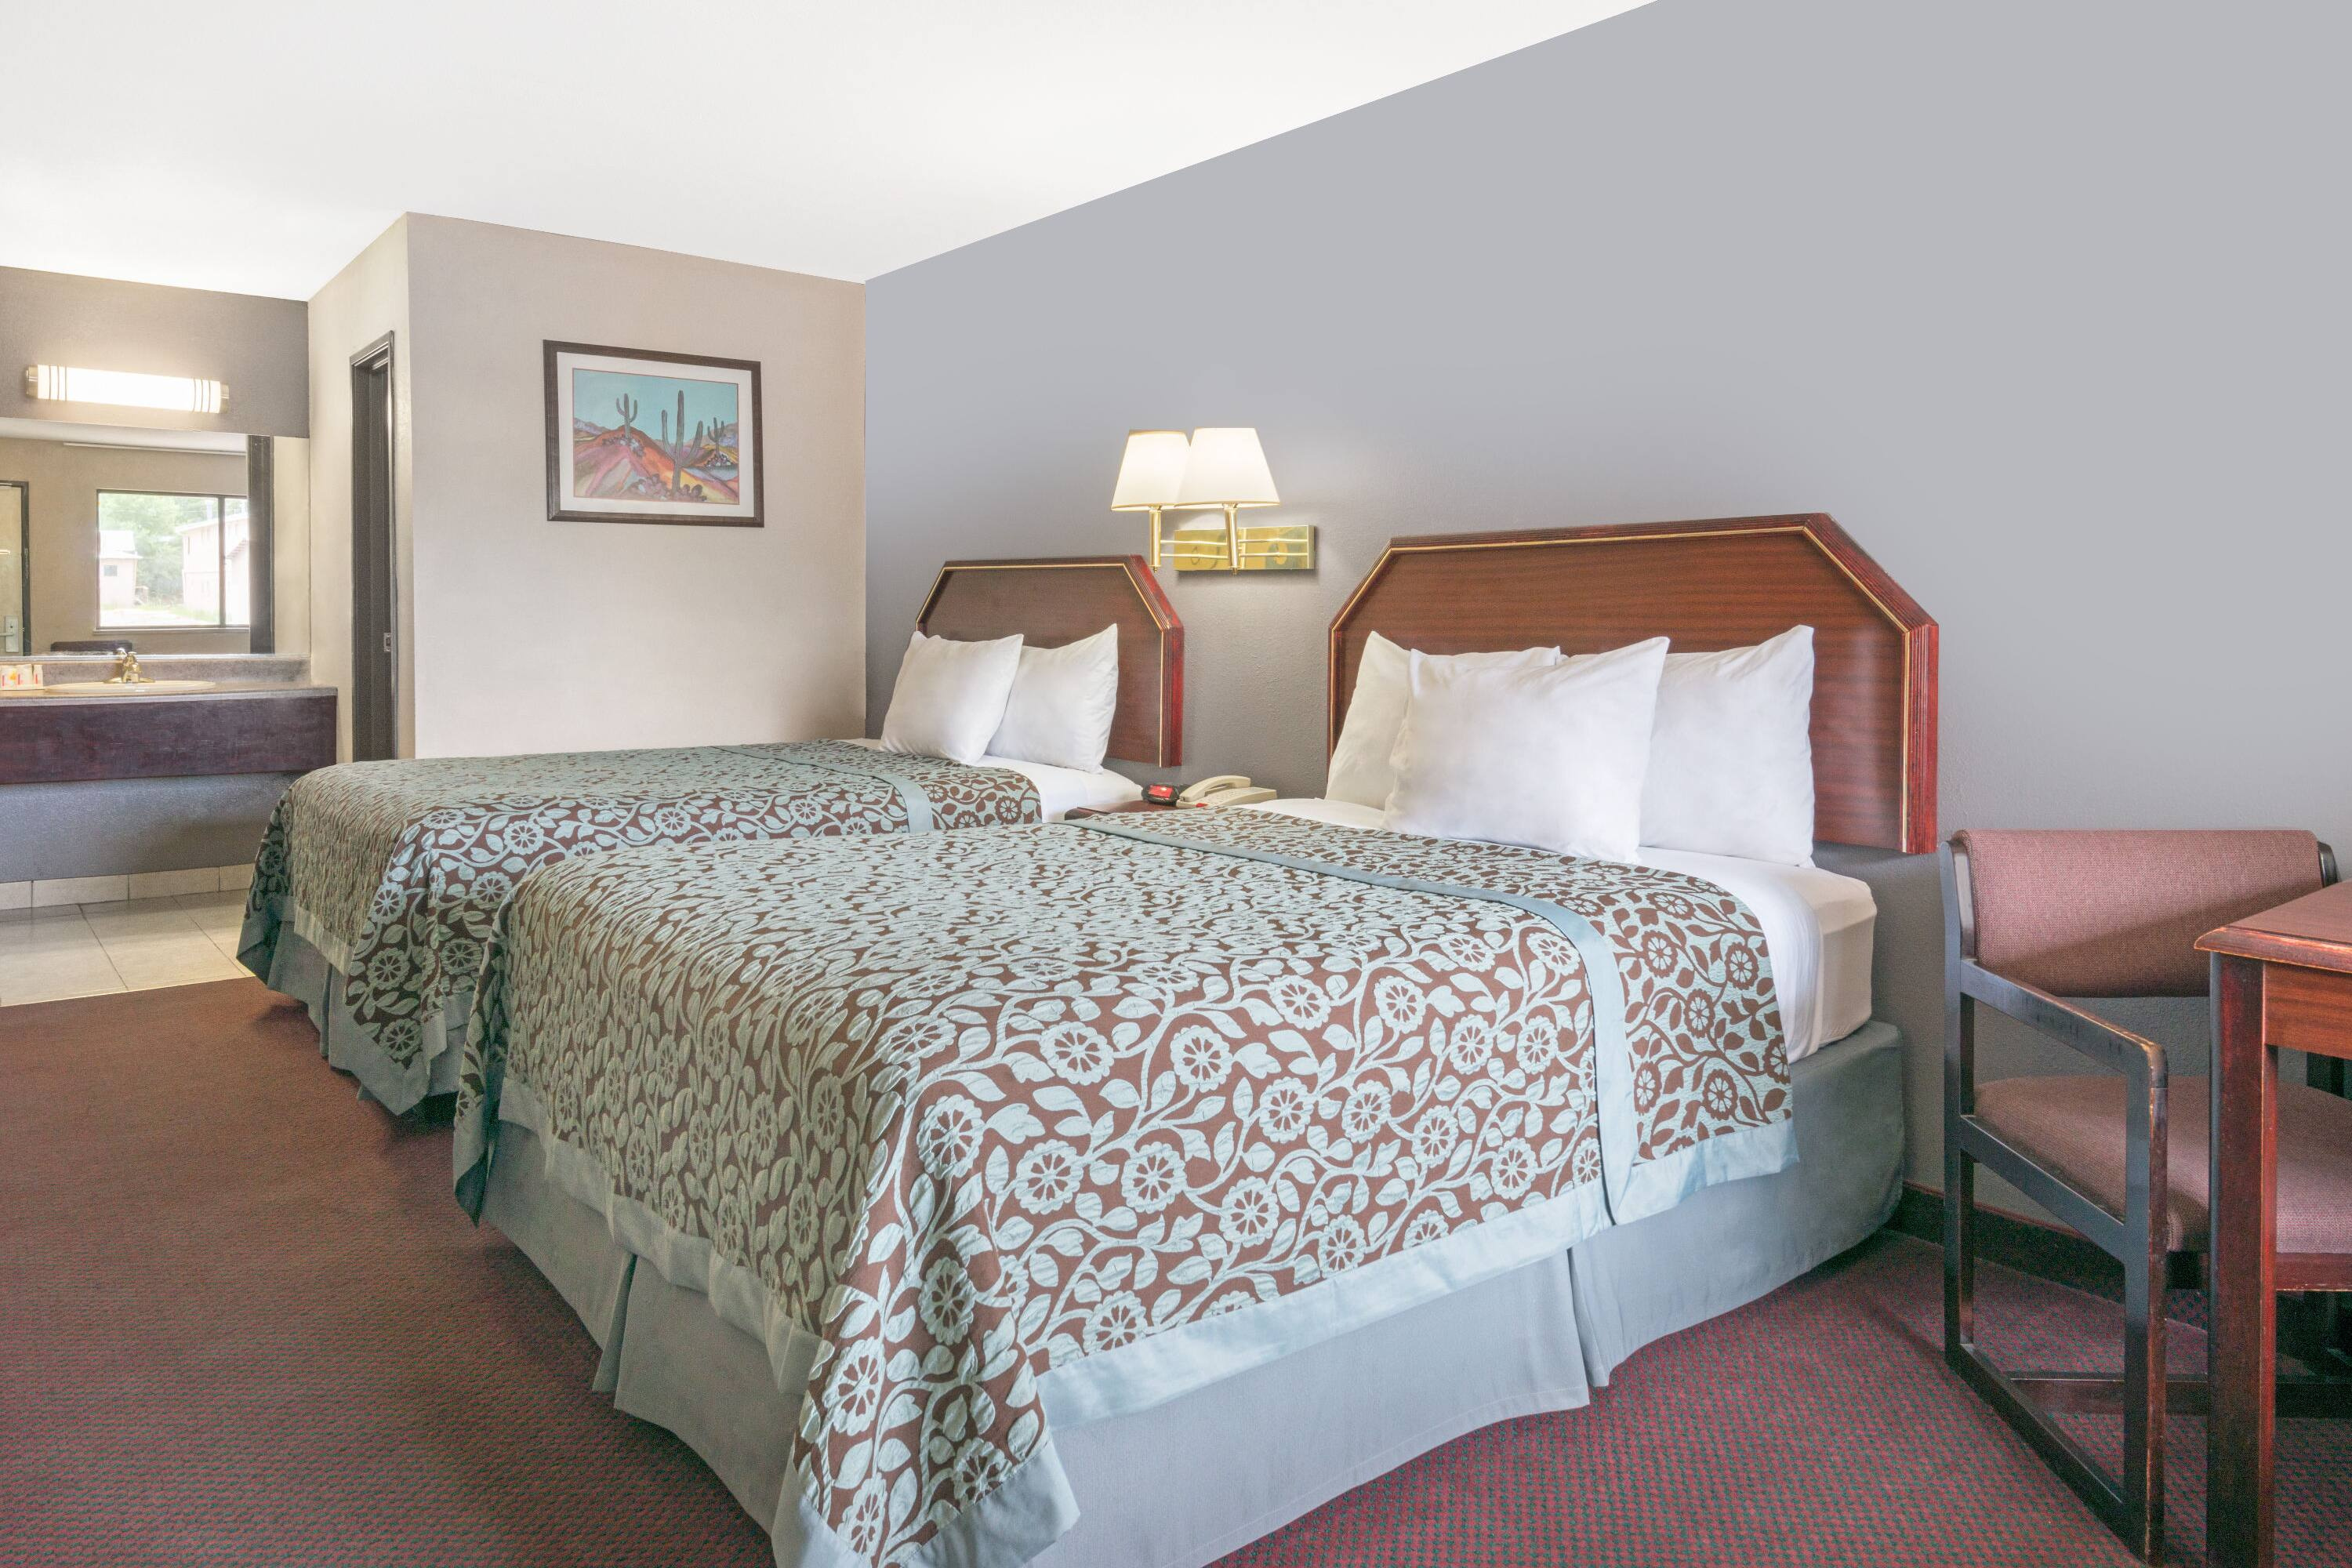 Guest room at the Days Inn Ruidoso Downs in Ruidoso Downs, New Mexico